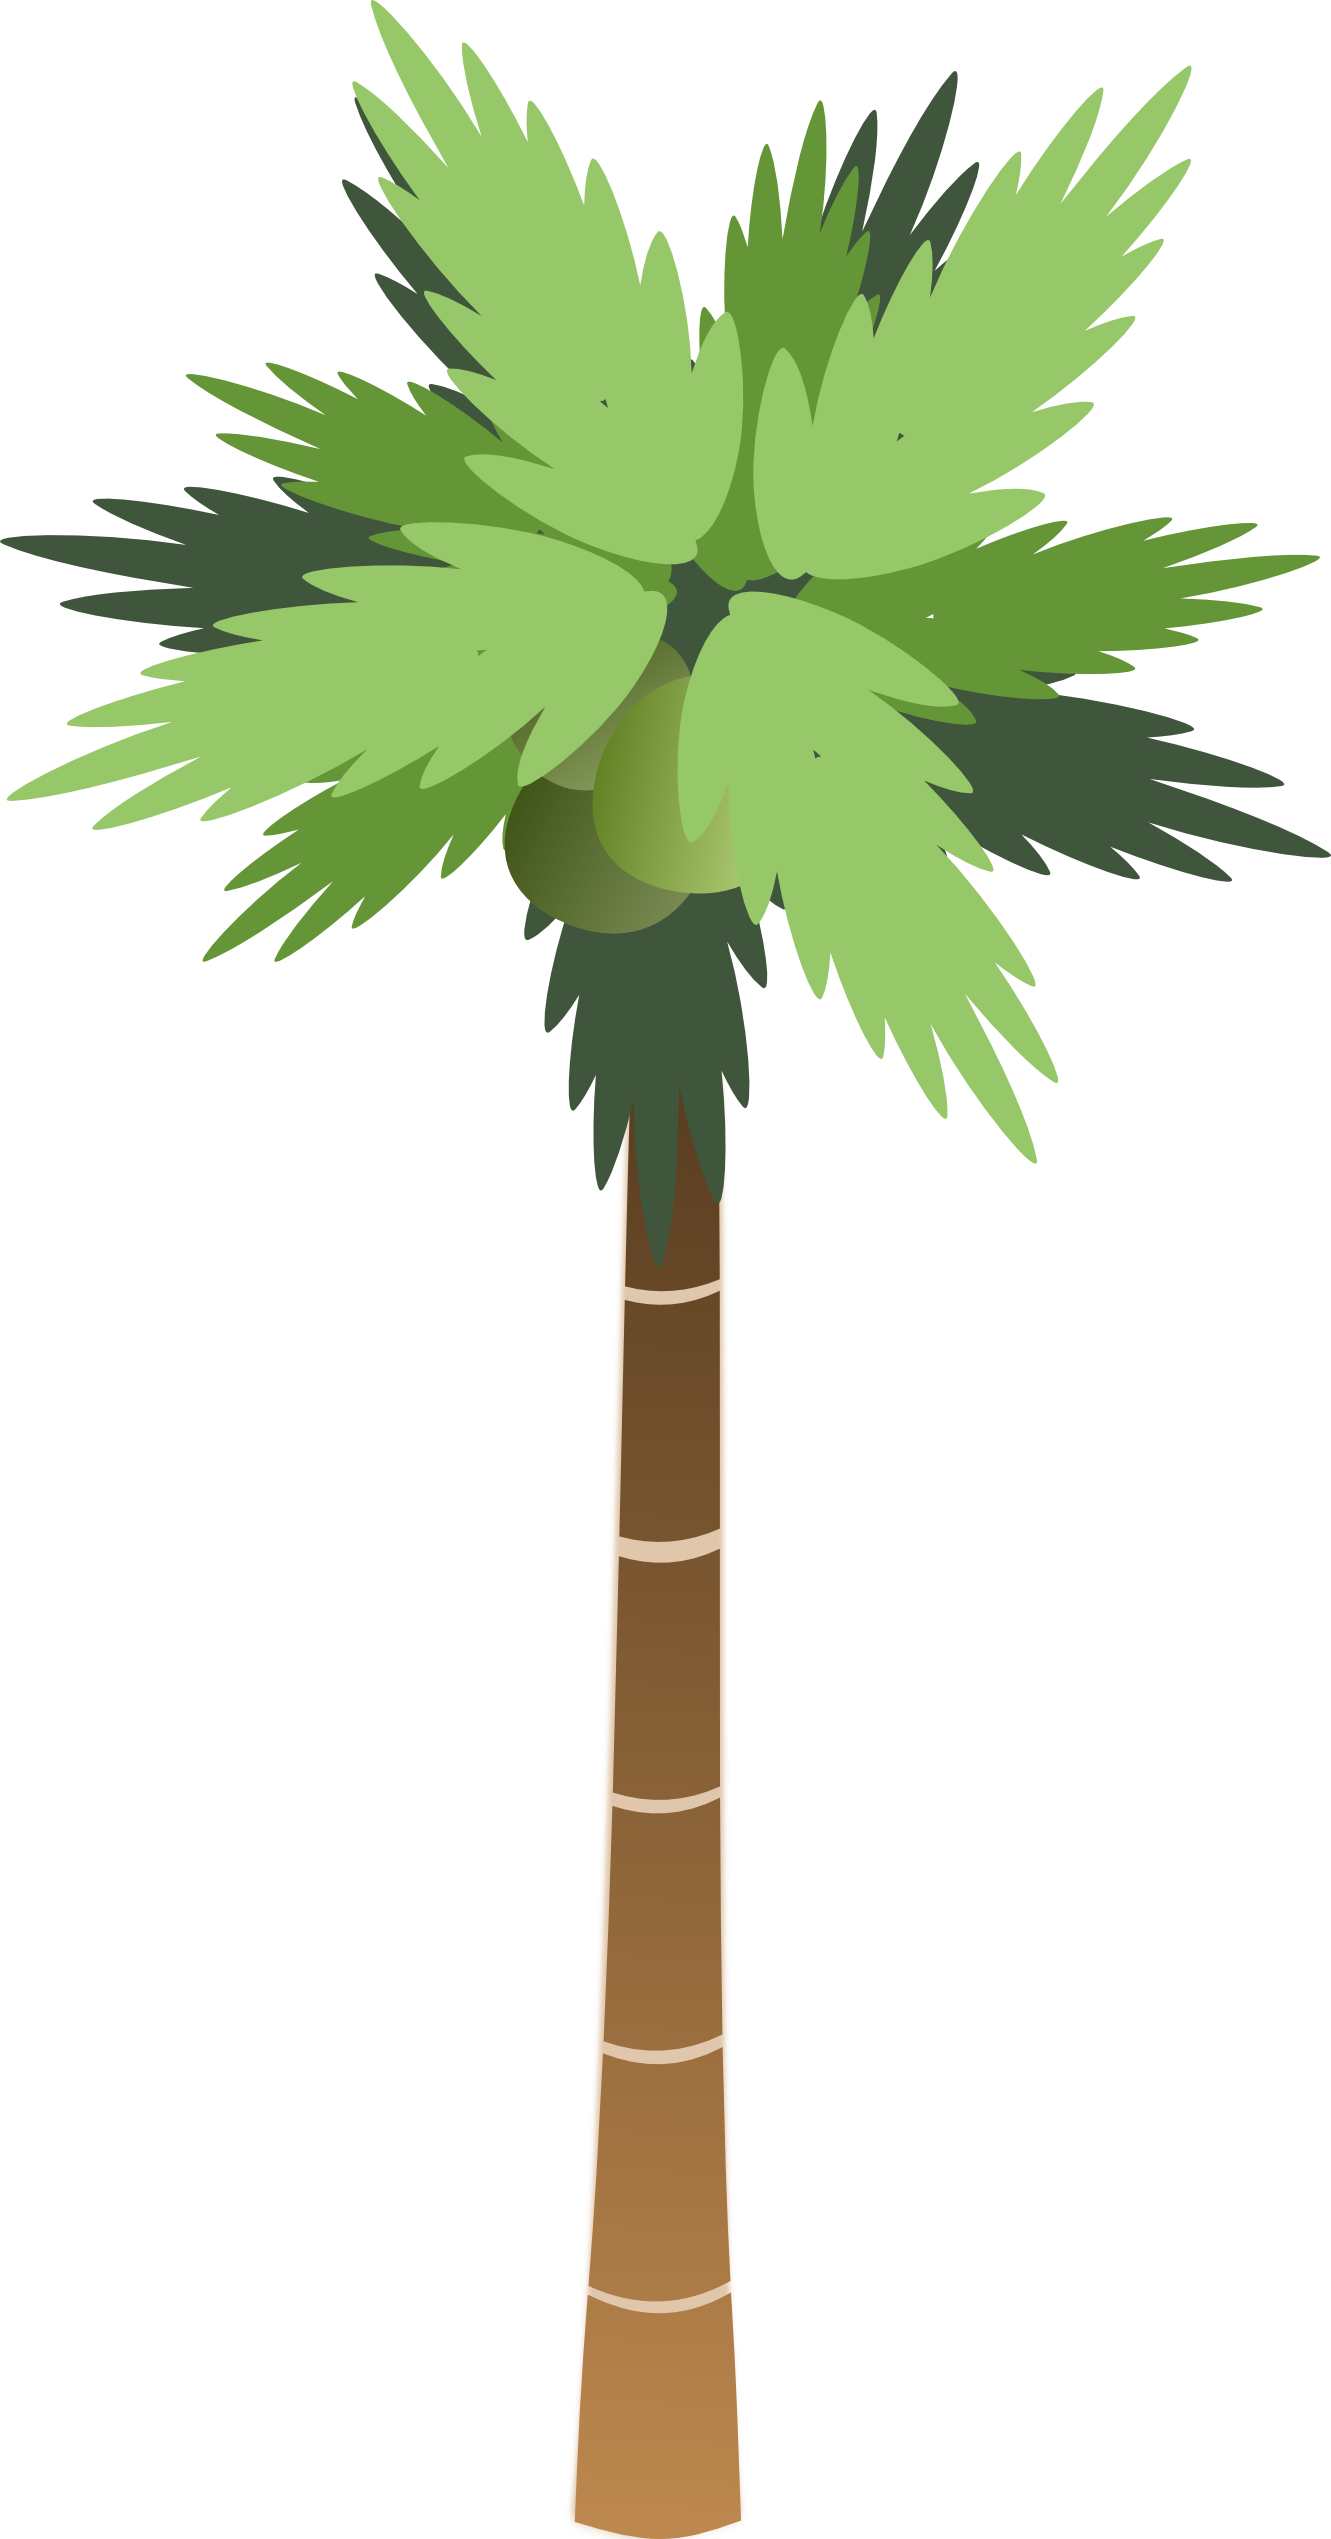 Palm Trees Cartoon Images - ClipArt Best